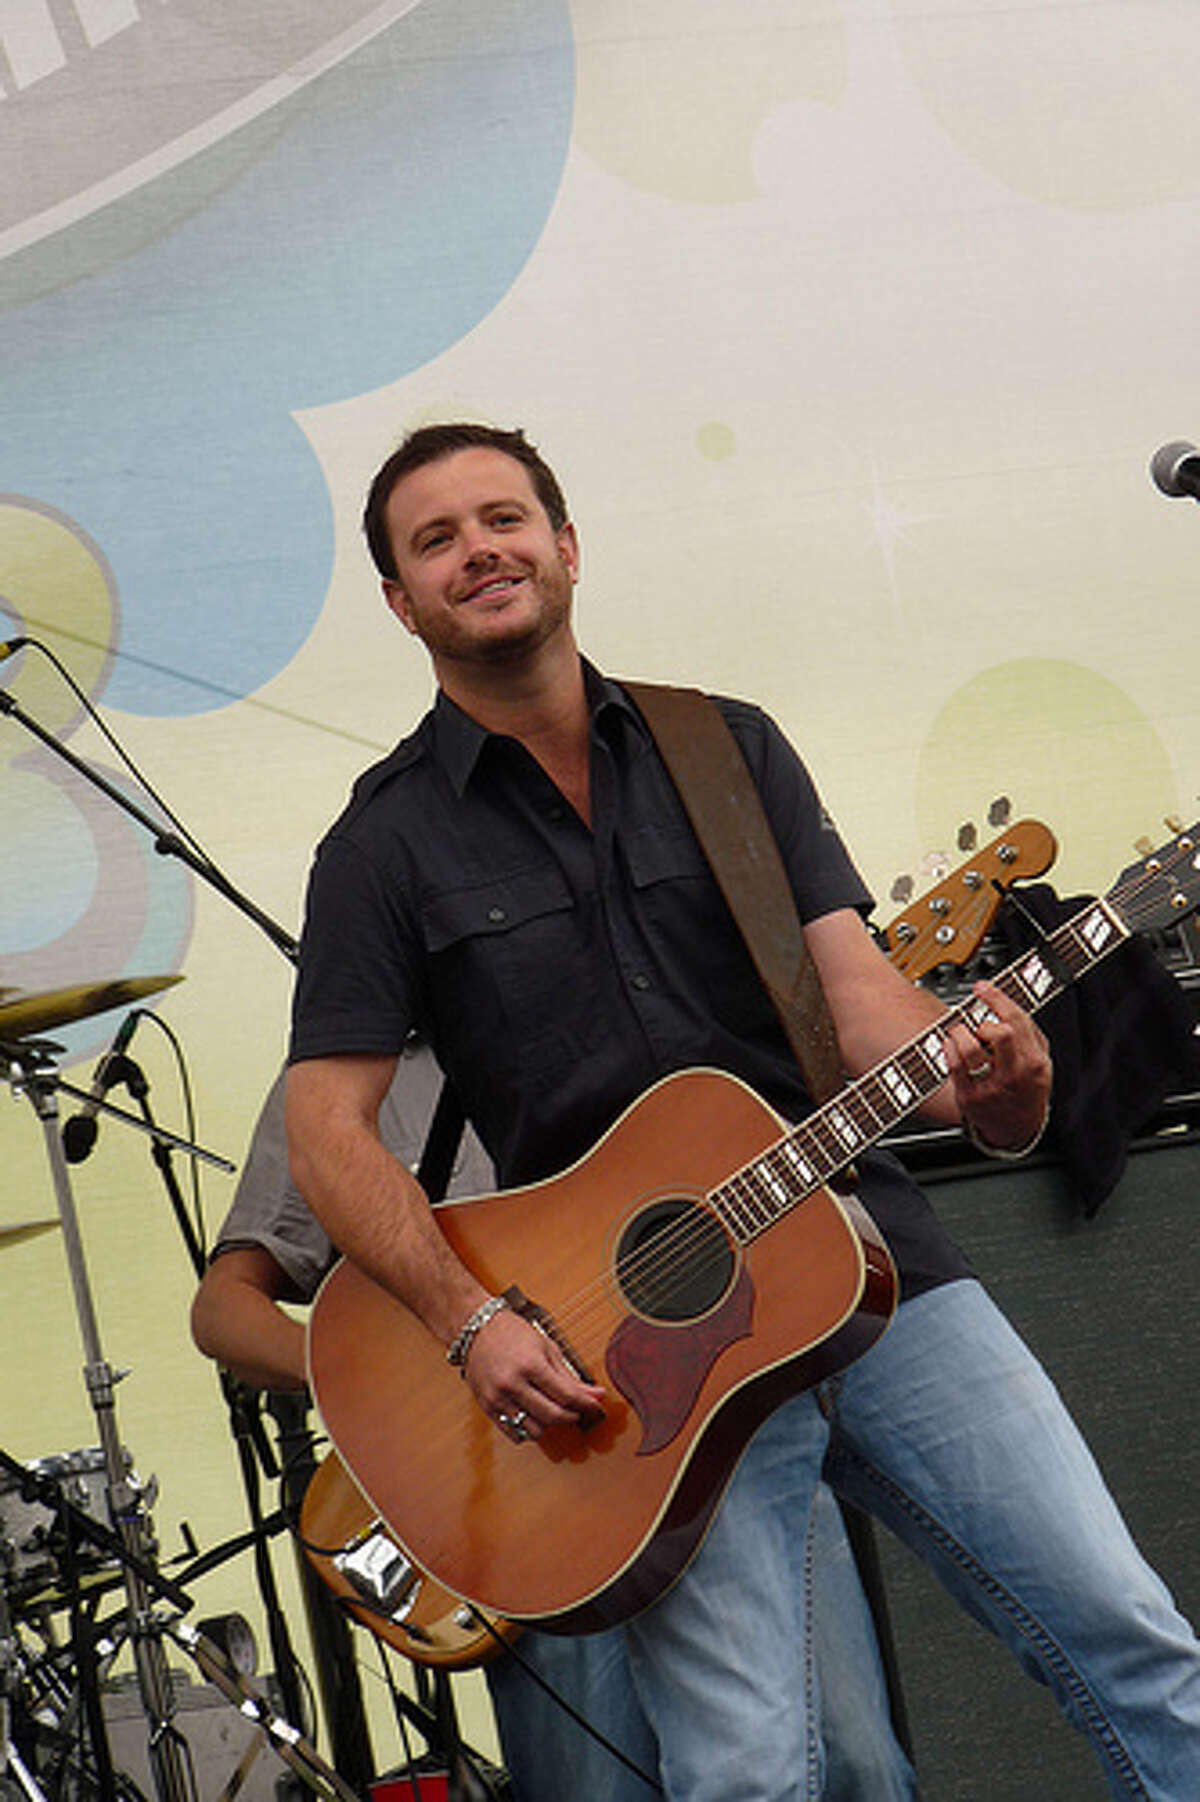 Tall City Memorial Stair Climb concert is set for 4p.m. Saturday. The concert features Wade Bowen, theStatelineBand, Electric Gypsies. The cost for the concert only is $35.